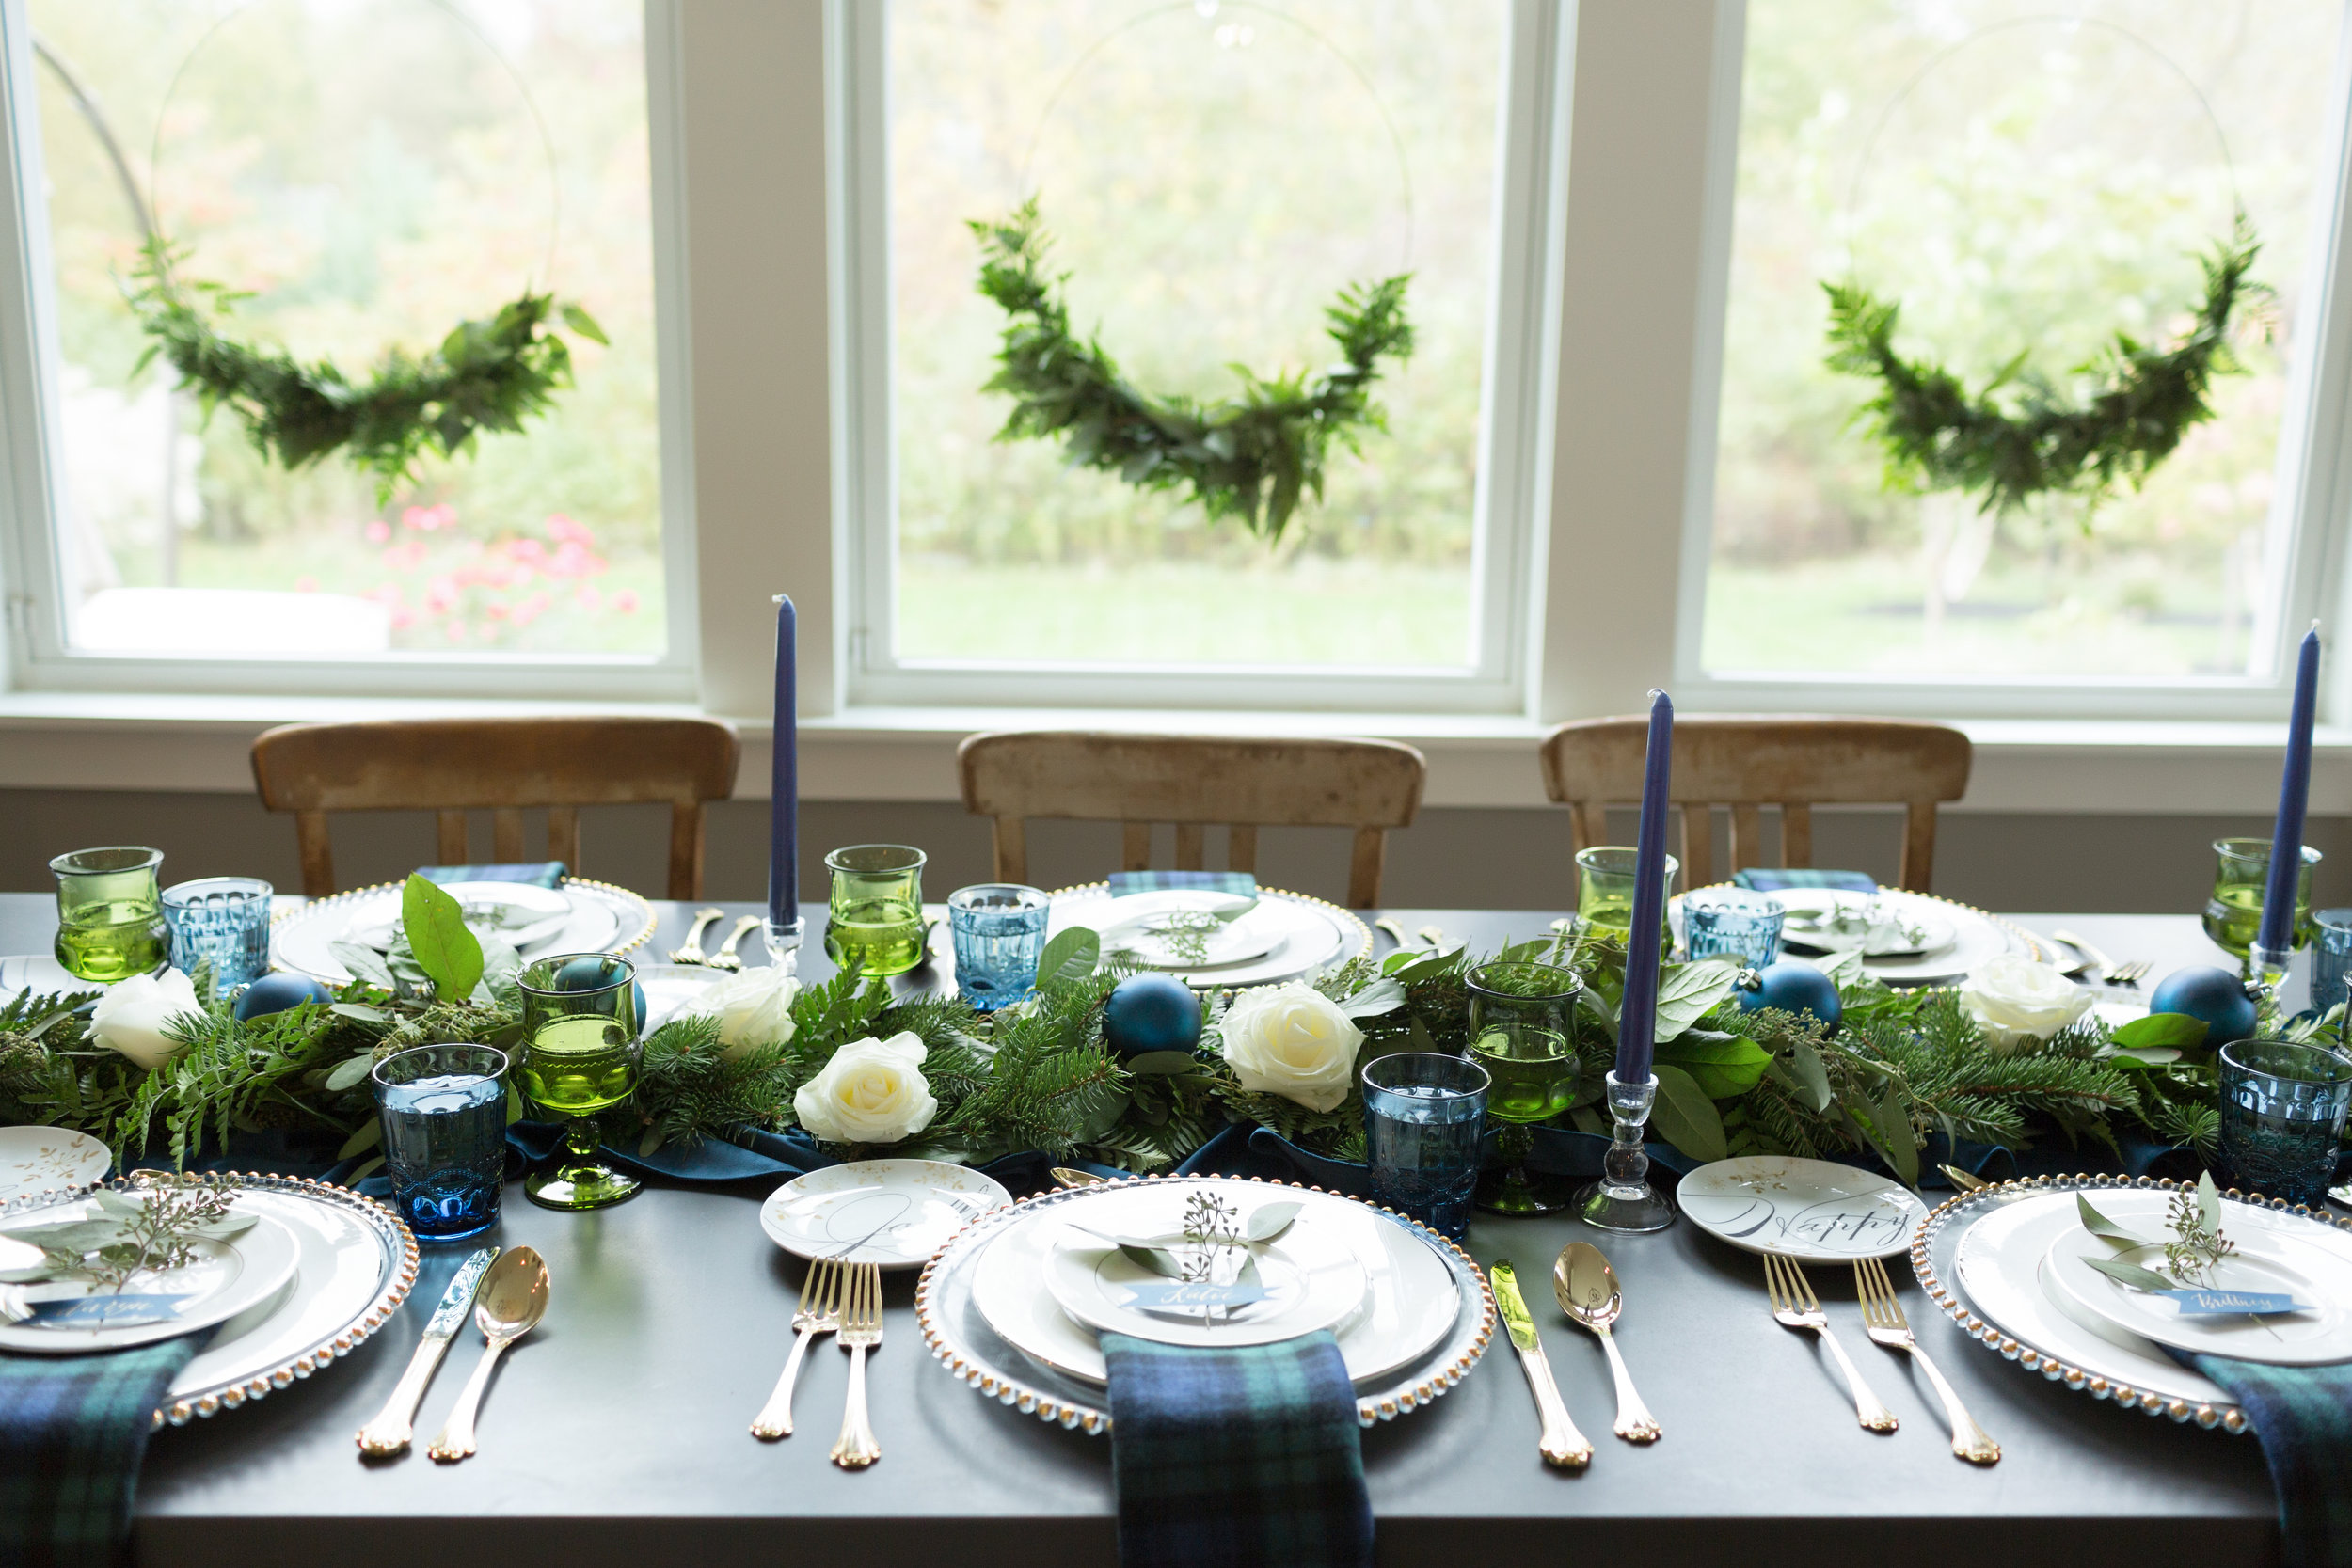 Favorite Things One Stylish Party-61.jpg